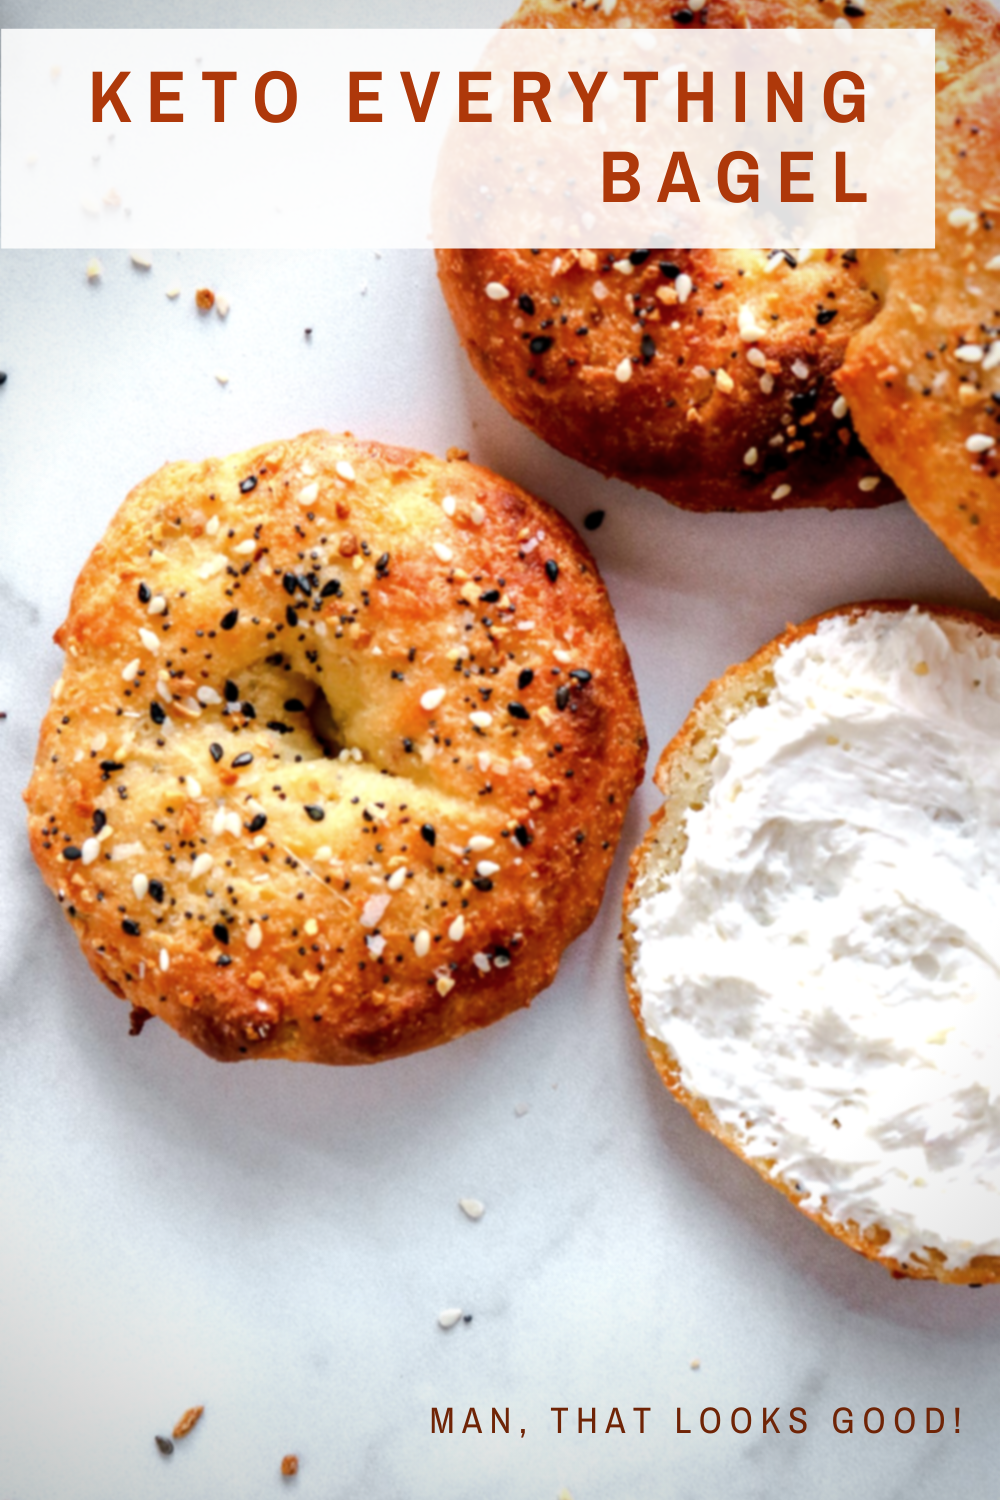 Finding good bagels is hard enough, but it's especially hard if you're sticking to a keto diet. But if you love bagels, then you will definitely love this keto bagel recipe that will have you filling up the toaster for seconds in no time. This recipe for Keto Everything Bagels is easy, even for beginners, and it's perfect if you're a bagel lover trying to stick to a keto diet. #manthatlooksgood #keto #lowcarb #recipe #ketorecipe #ketobagel #ketobagels #ketobreakfast #lowcarbbreakfast